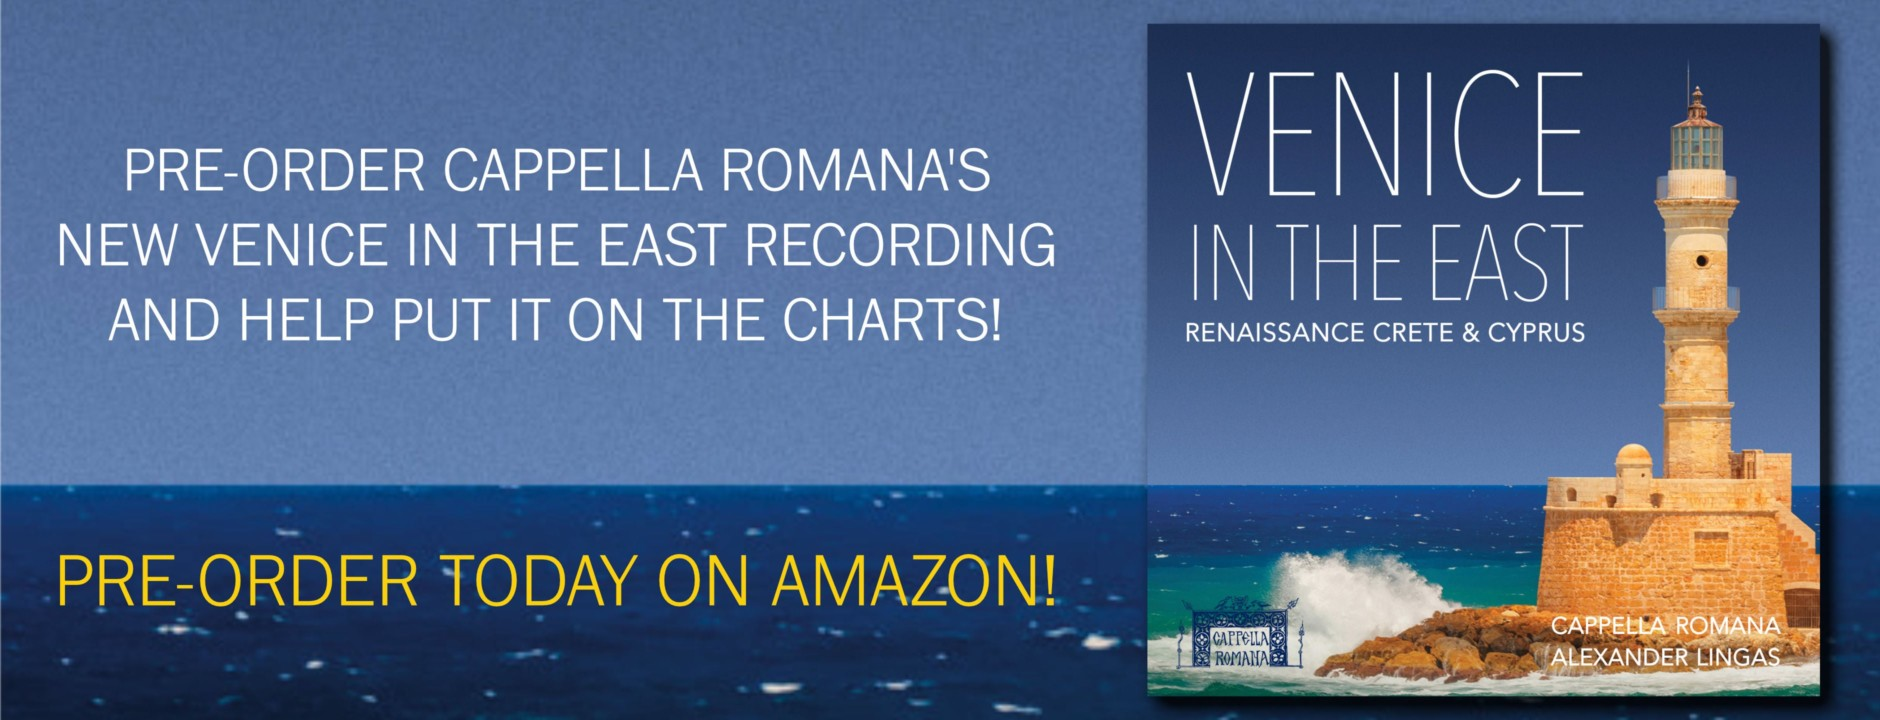 Pre-Order Venice in the East on Amazon